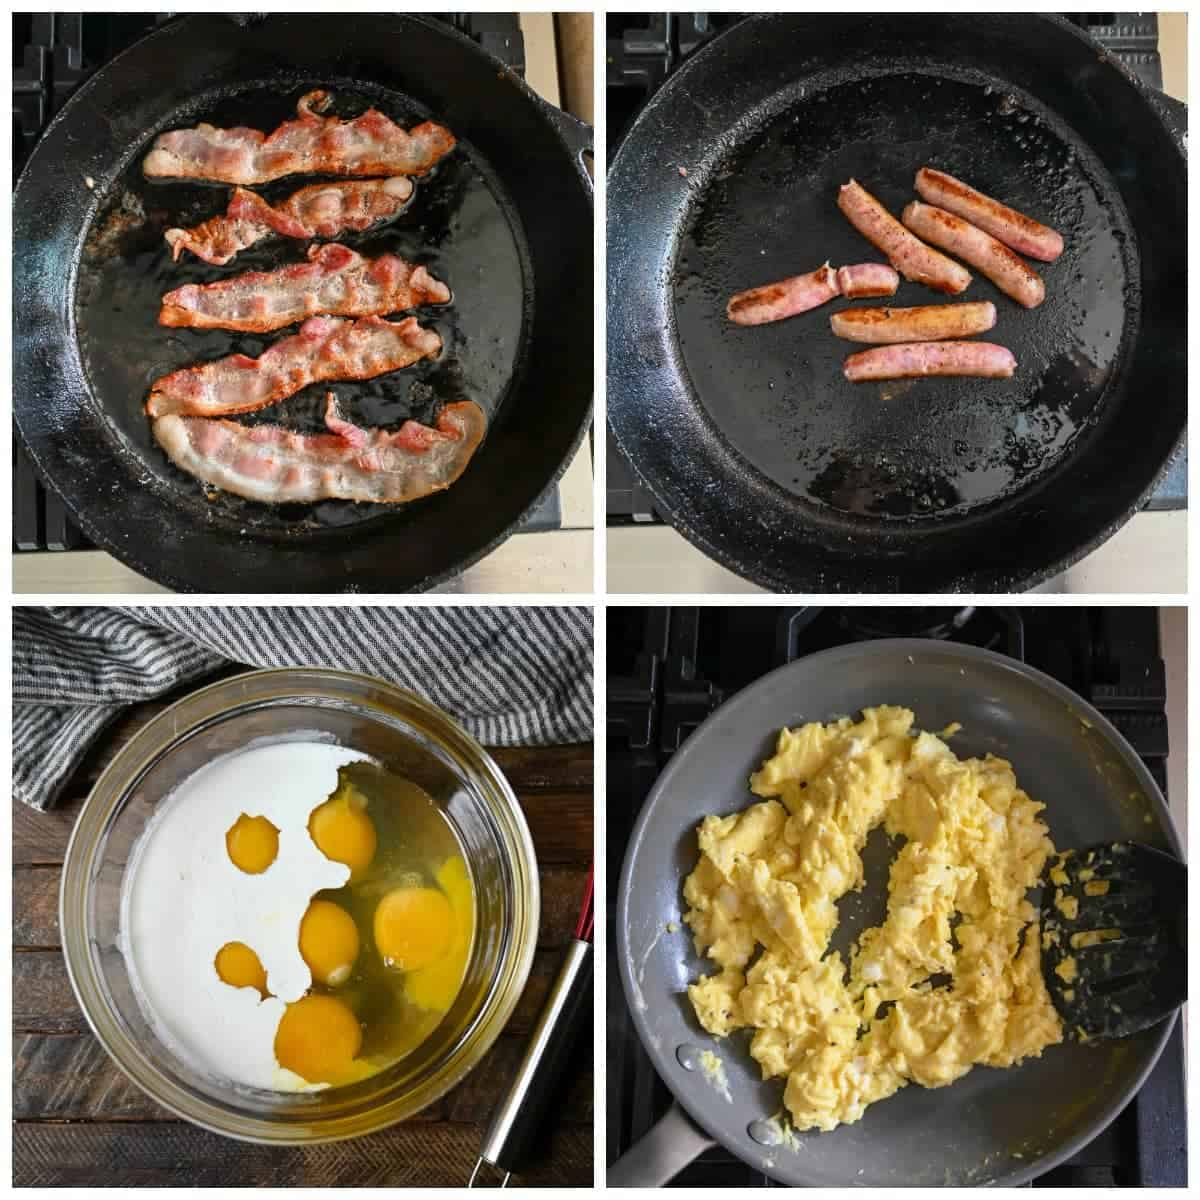 Four process shots. First one, bacon being cooked in a skillet. second one, sausage being cooked in a skillet. Third one, eggs and cream in a clear bowl before being whisked together. Fourth one, Eggs have been scrambled in a skillet.